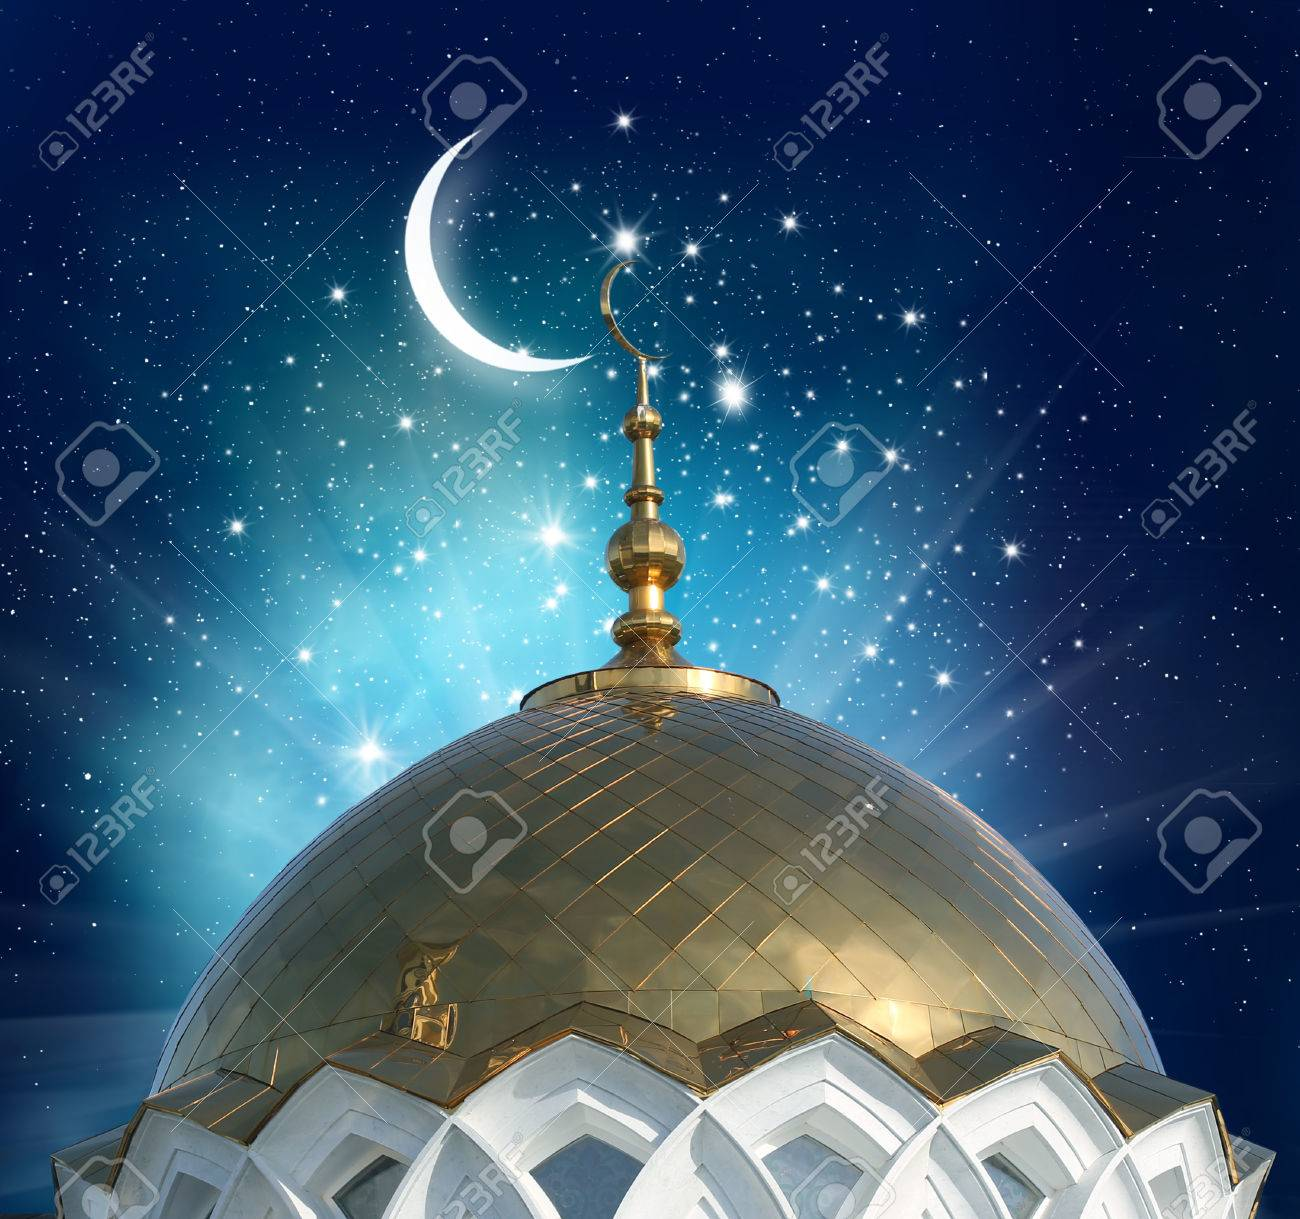 Mosque background for ramadan kareem stock photography image - Ramadan Kareem Background Crescent Moon At A Top Of A Mosque Stock Photo 58782923